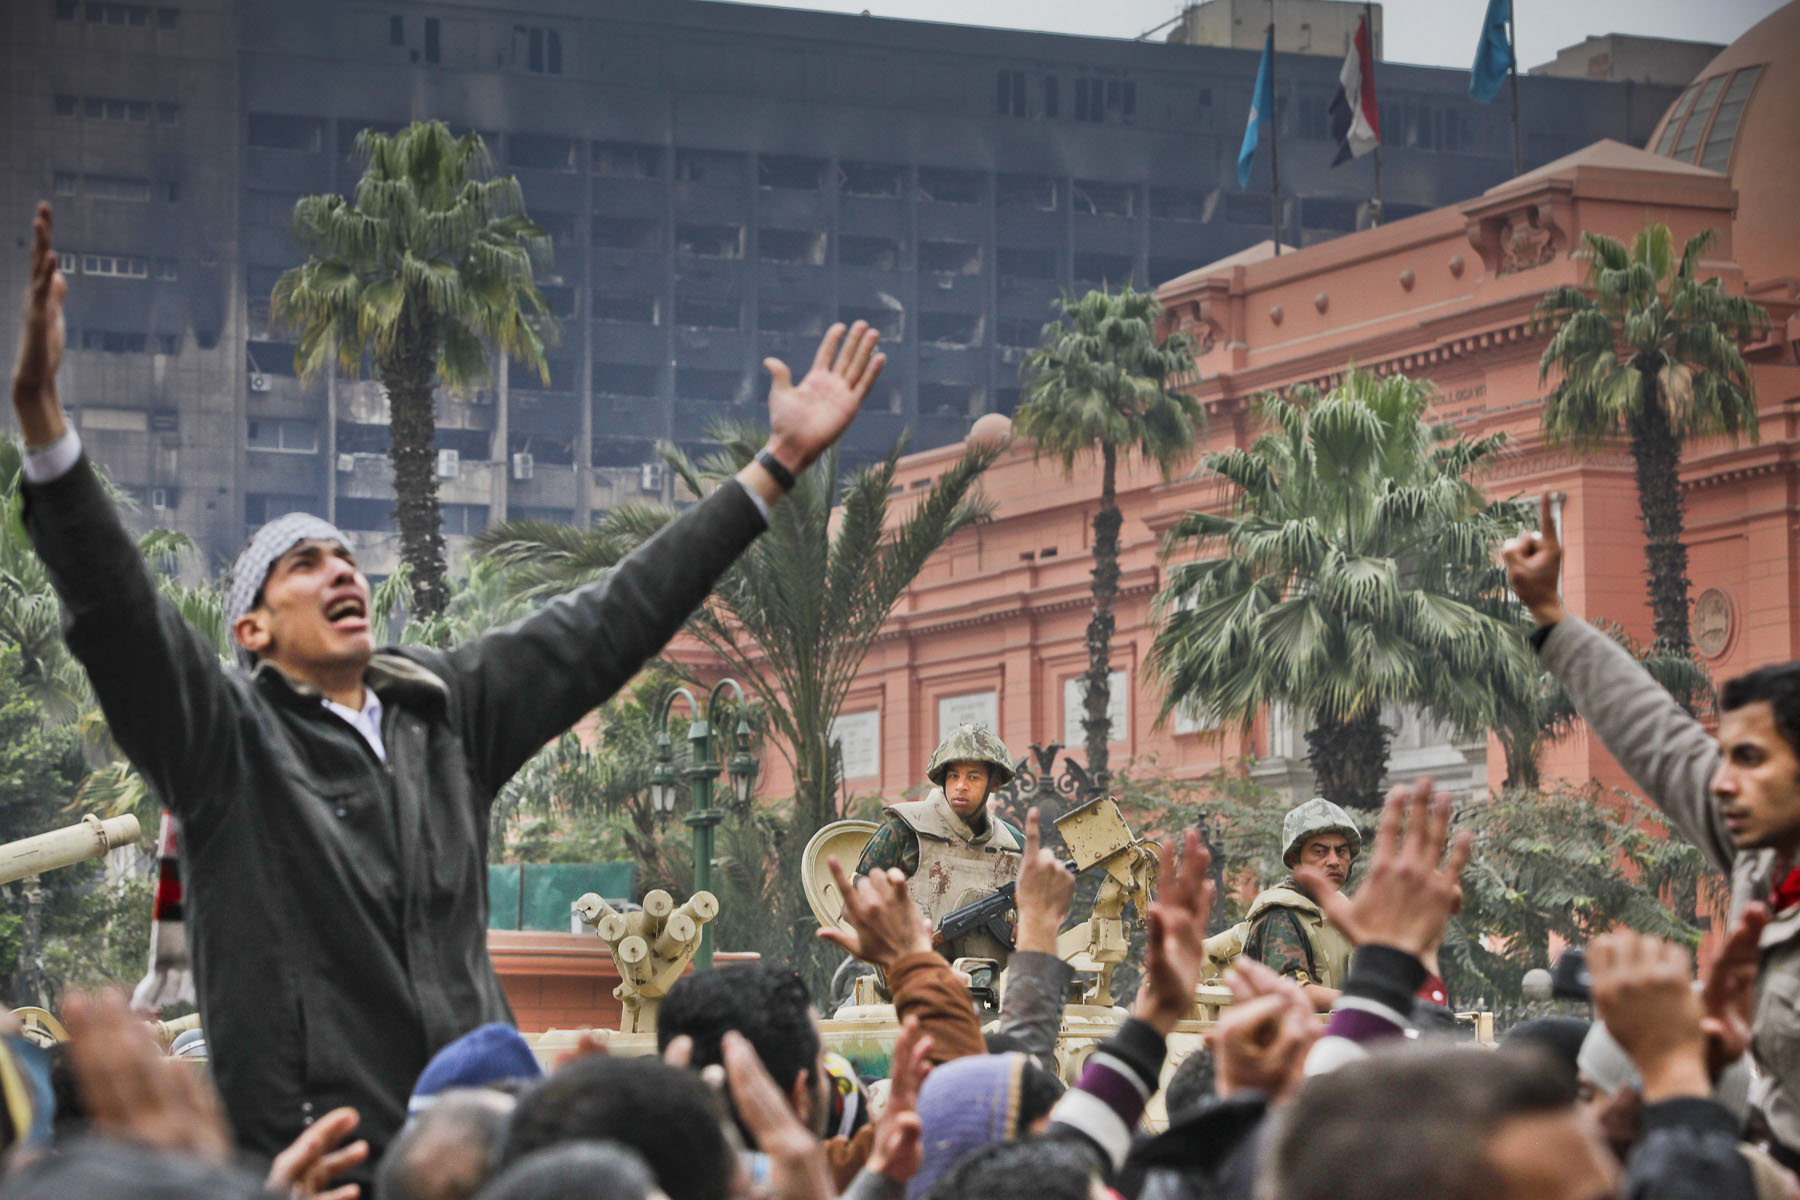 Egyptian demonstrators protest against President Mubarak's regime on Tahrir Square on Saturday February 5 2011